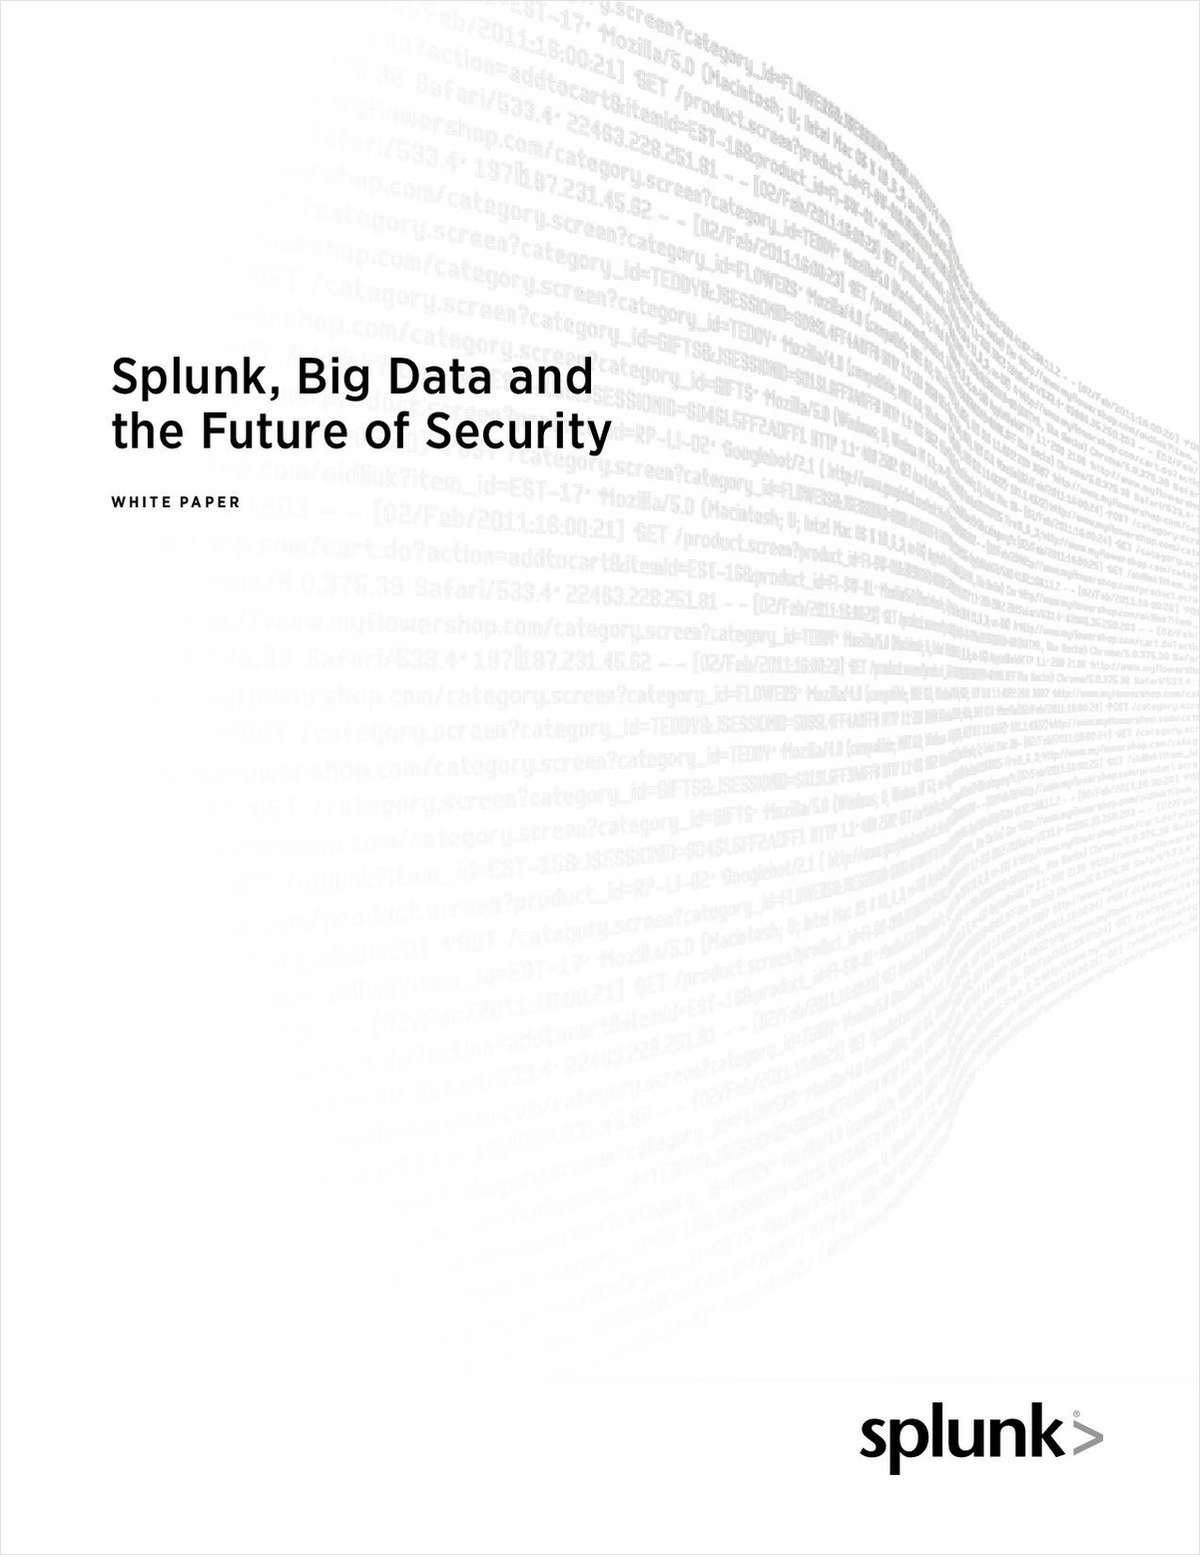 Splunk, Big Data and the Future of Security